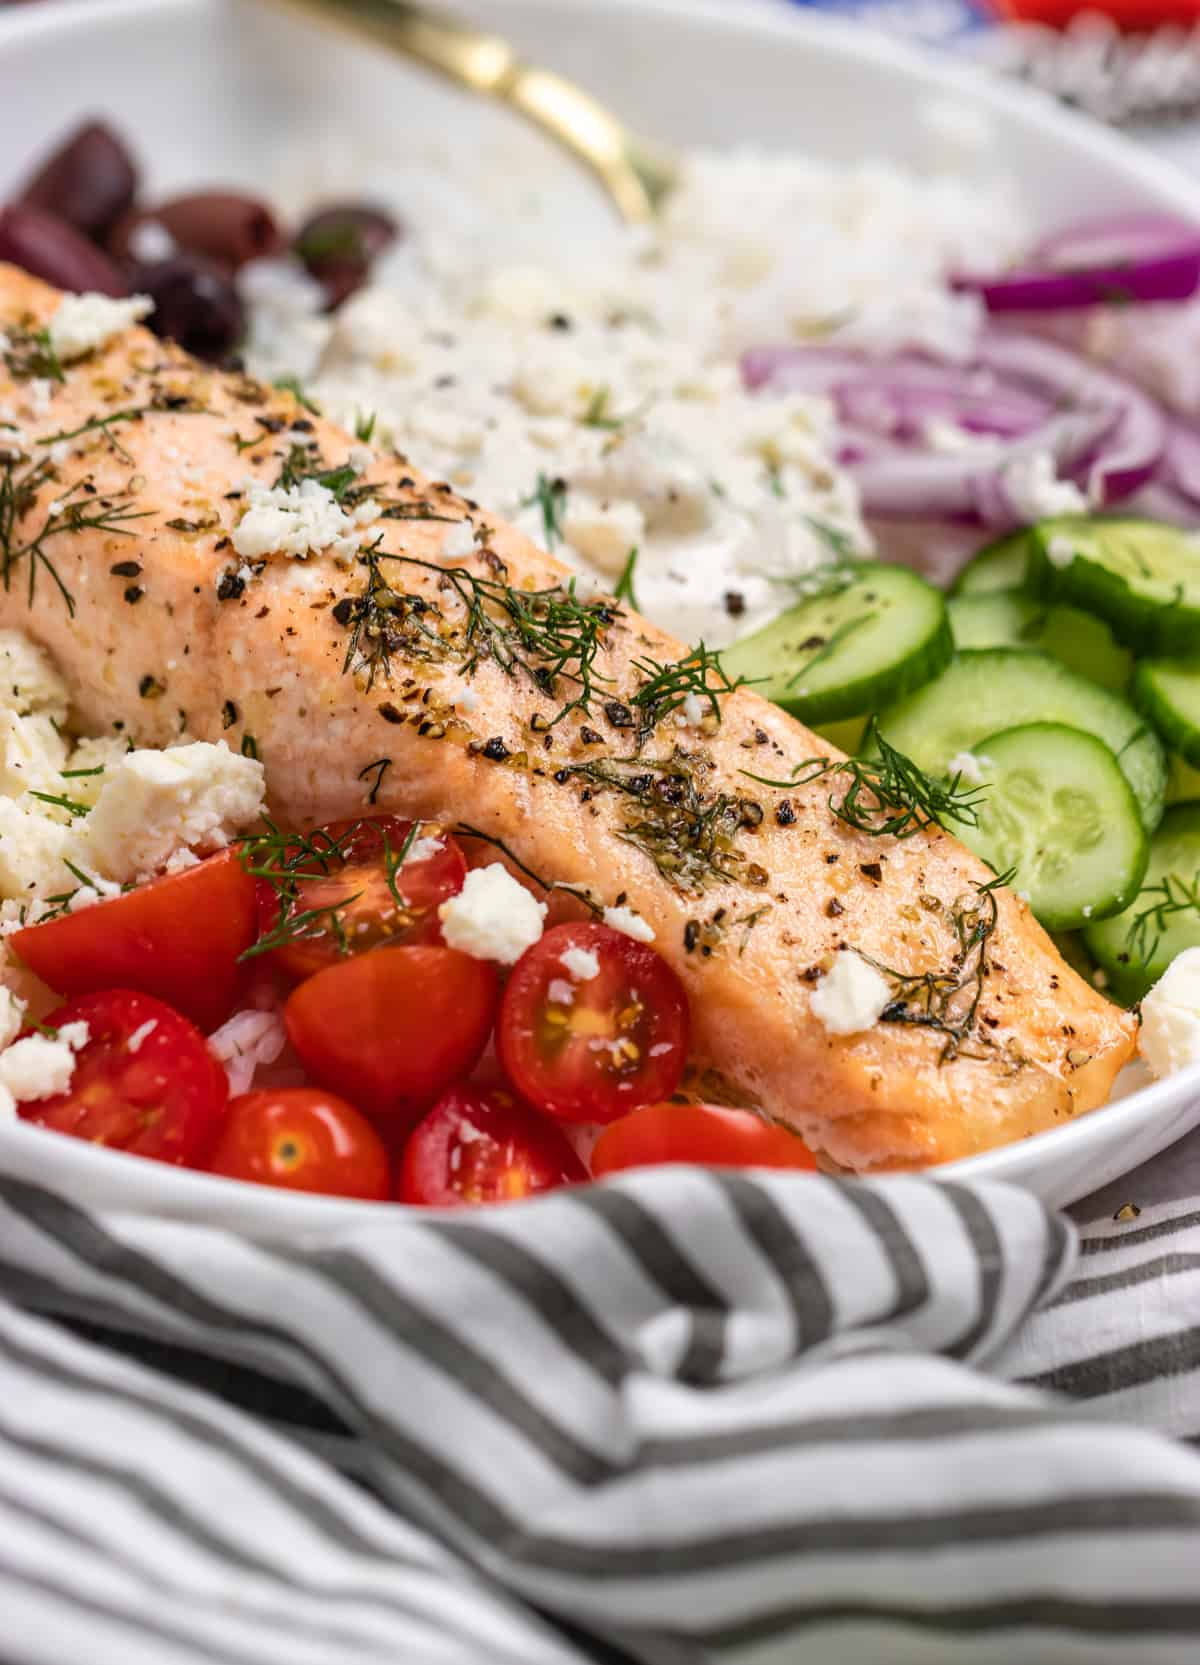 Salmon rice bowl with cucumber, onion, olives, rice and more.